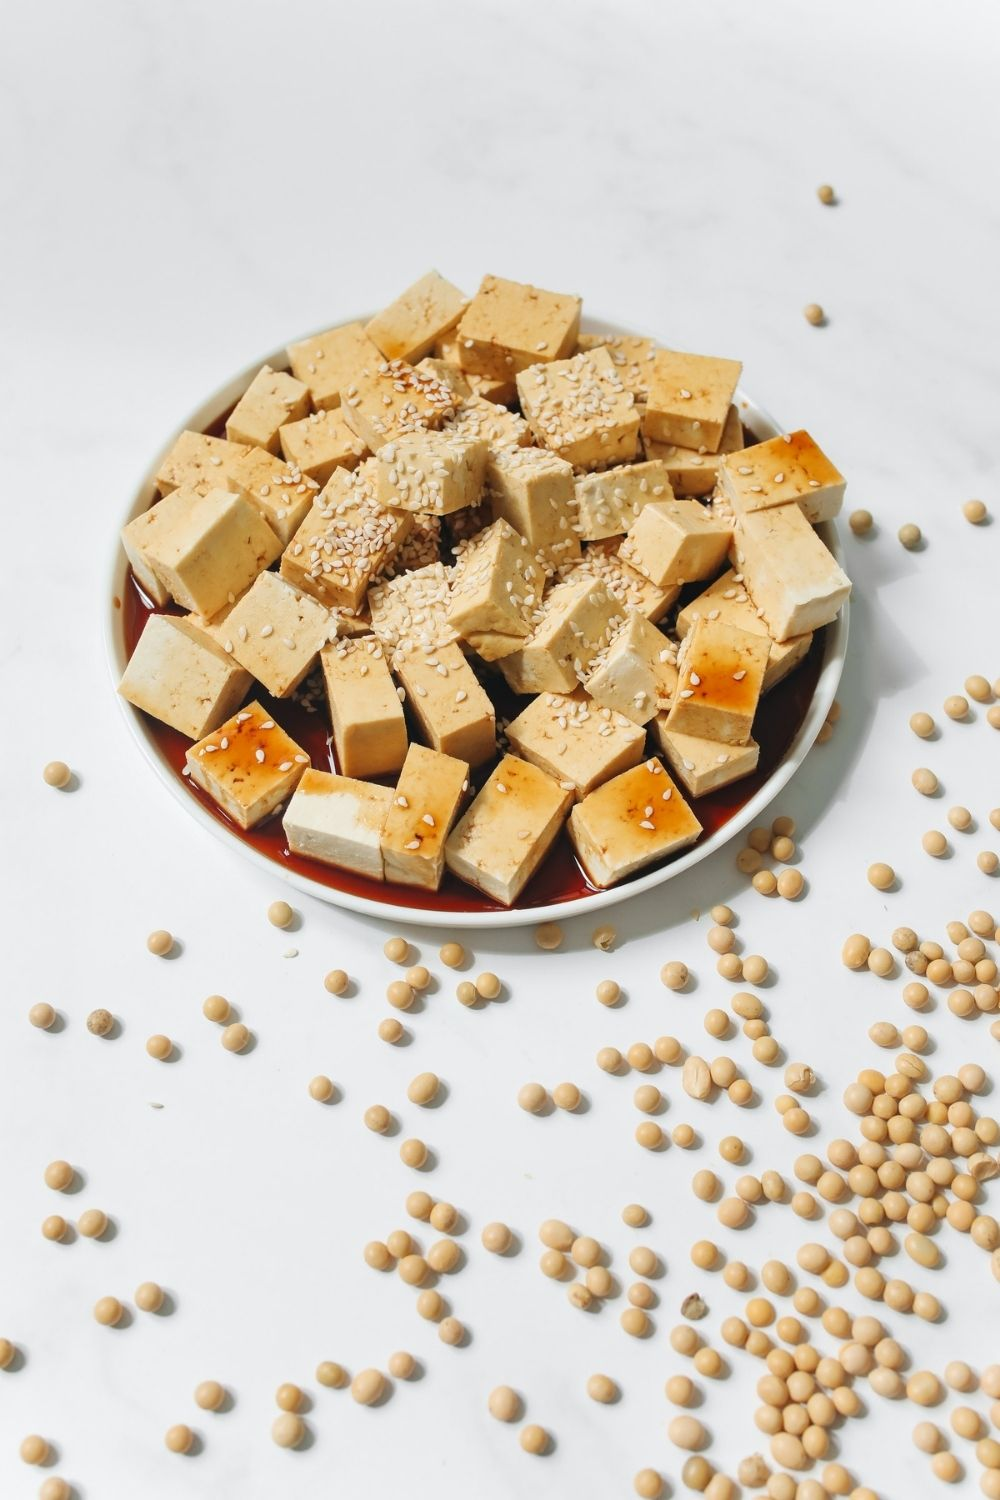 Tofu in bowl next to soybeans on white table